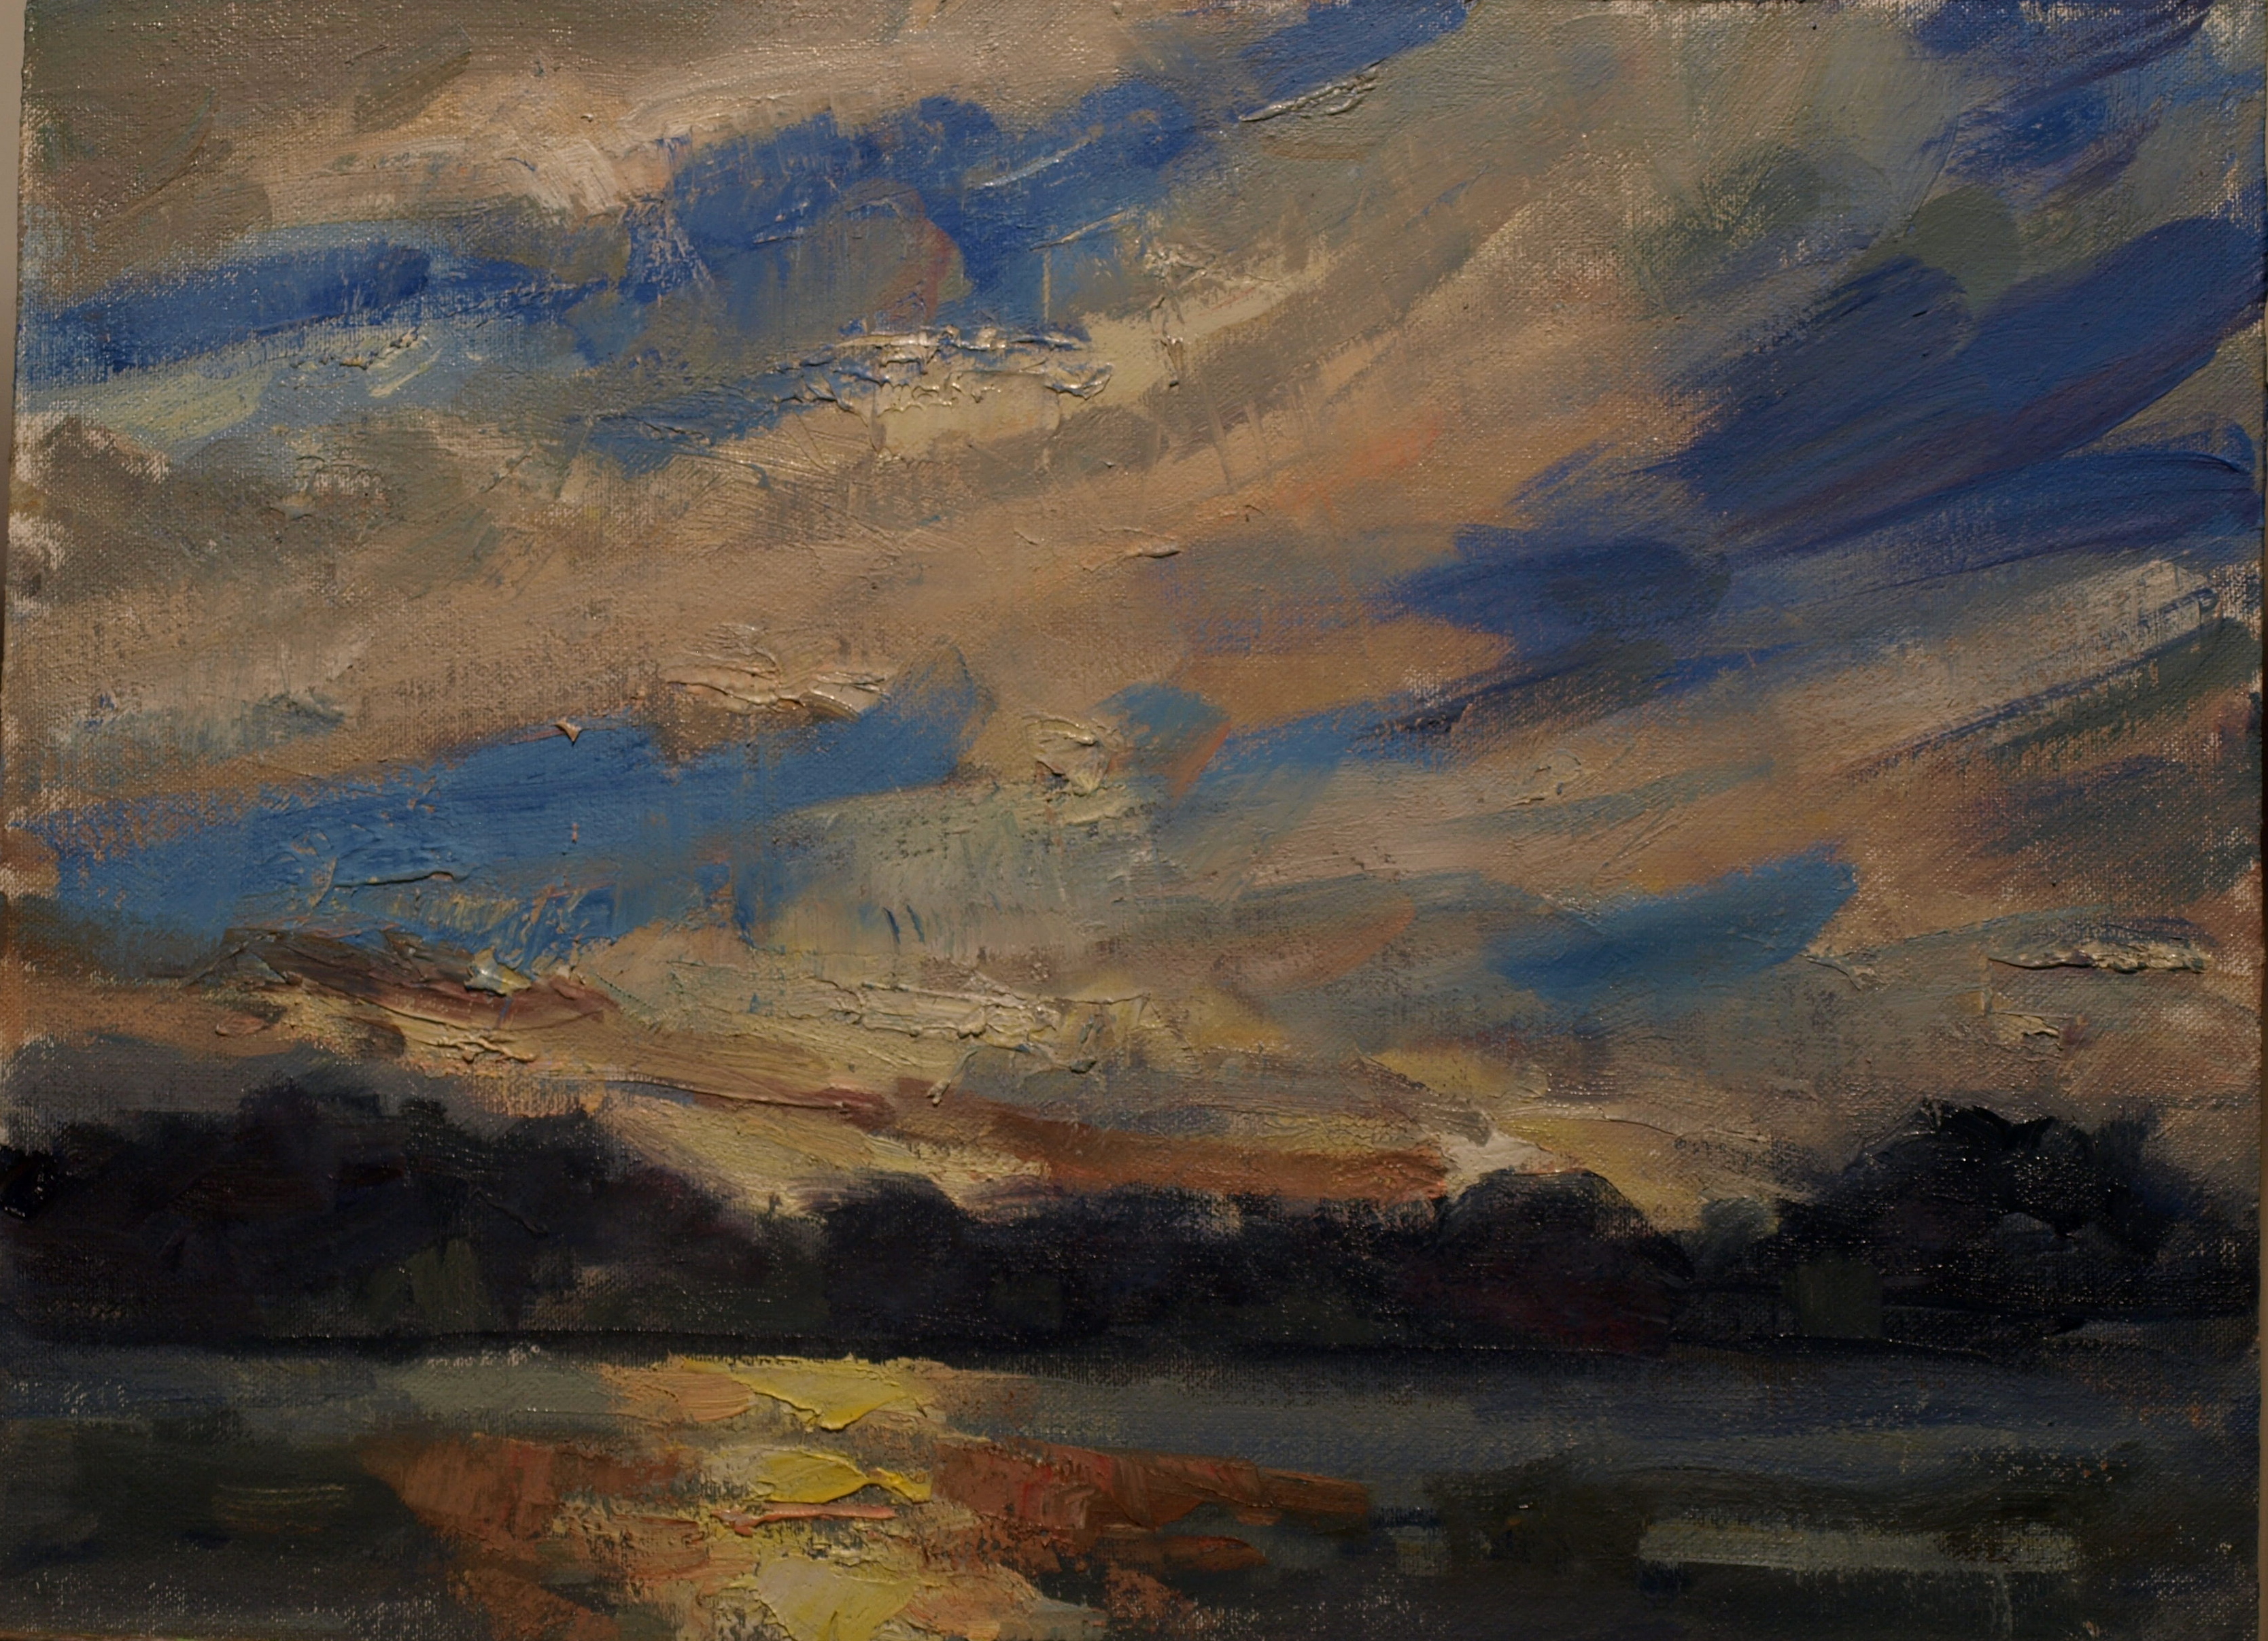 Mystic River Sunset, Oil on Canvas on Panel, 12 x 16 Inches, by Susan Grisell, $300